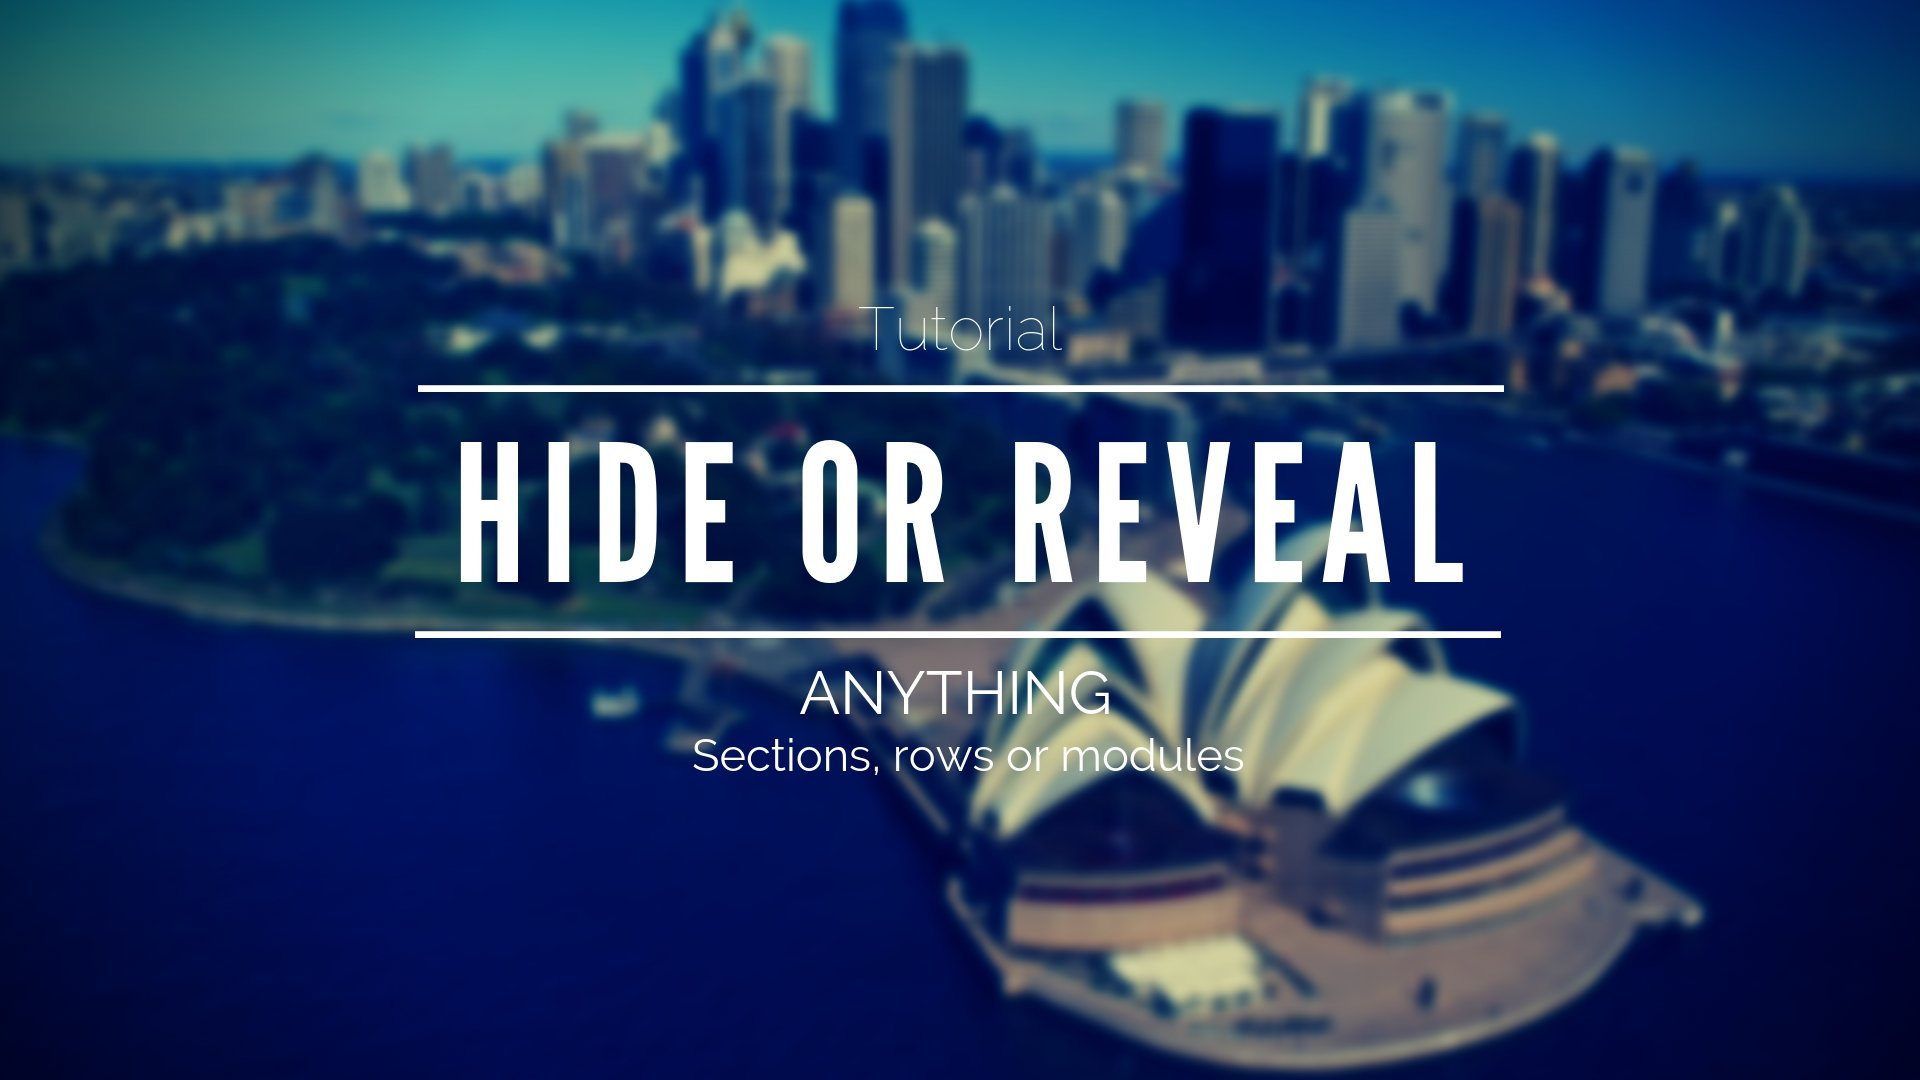 Hide and reveal any section, row or module